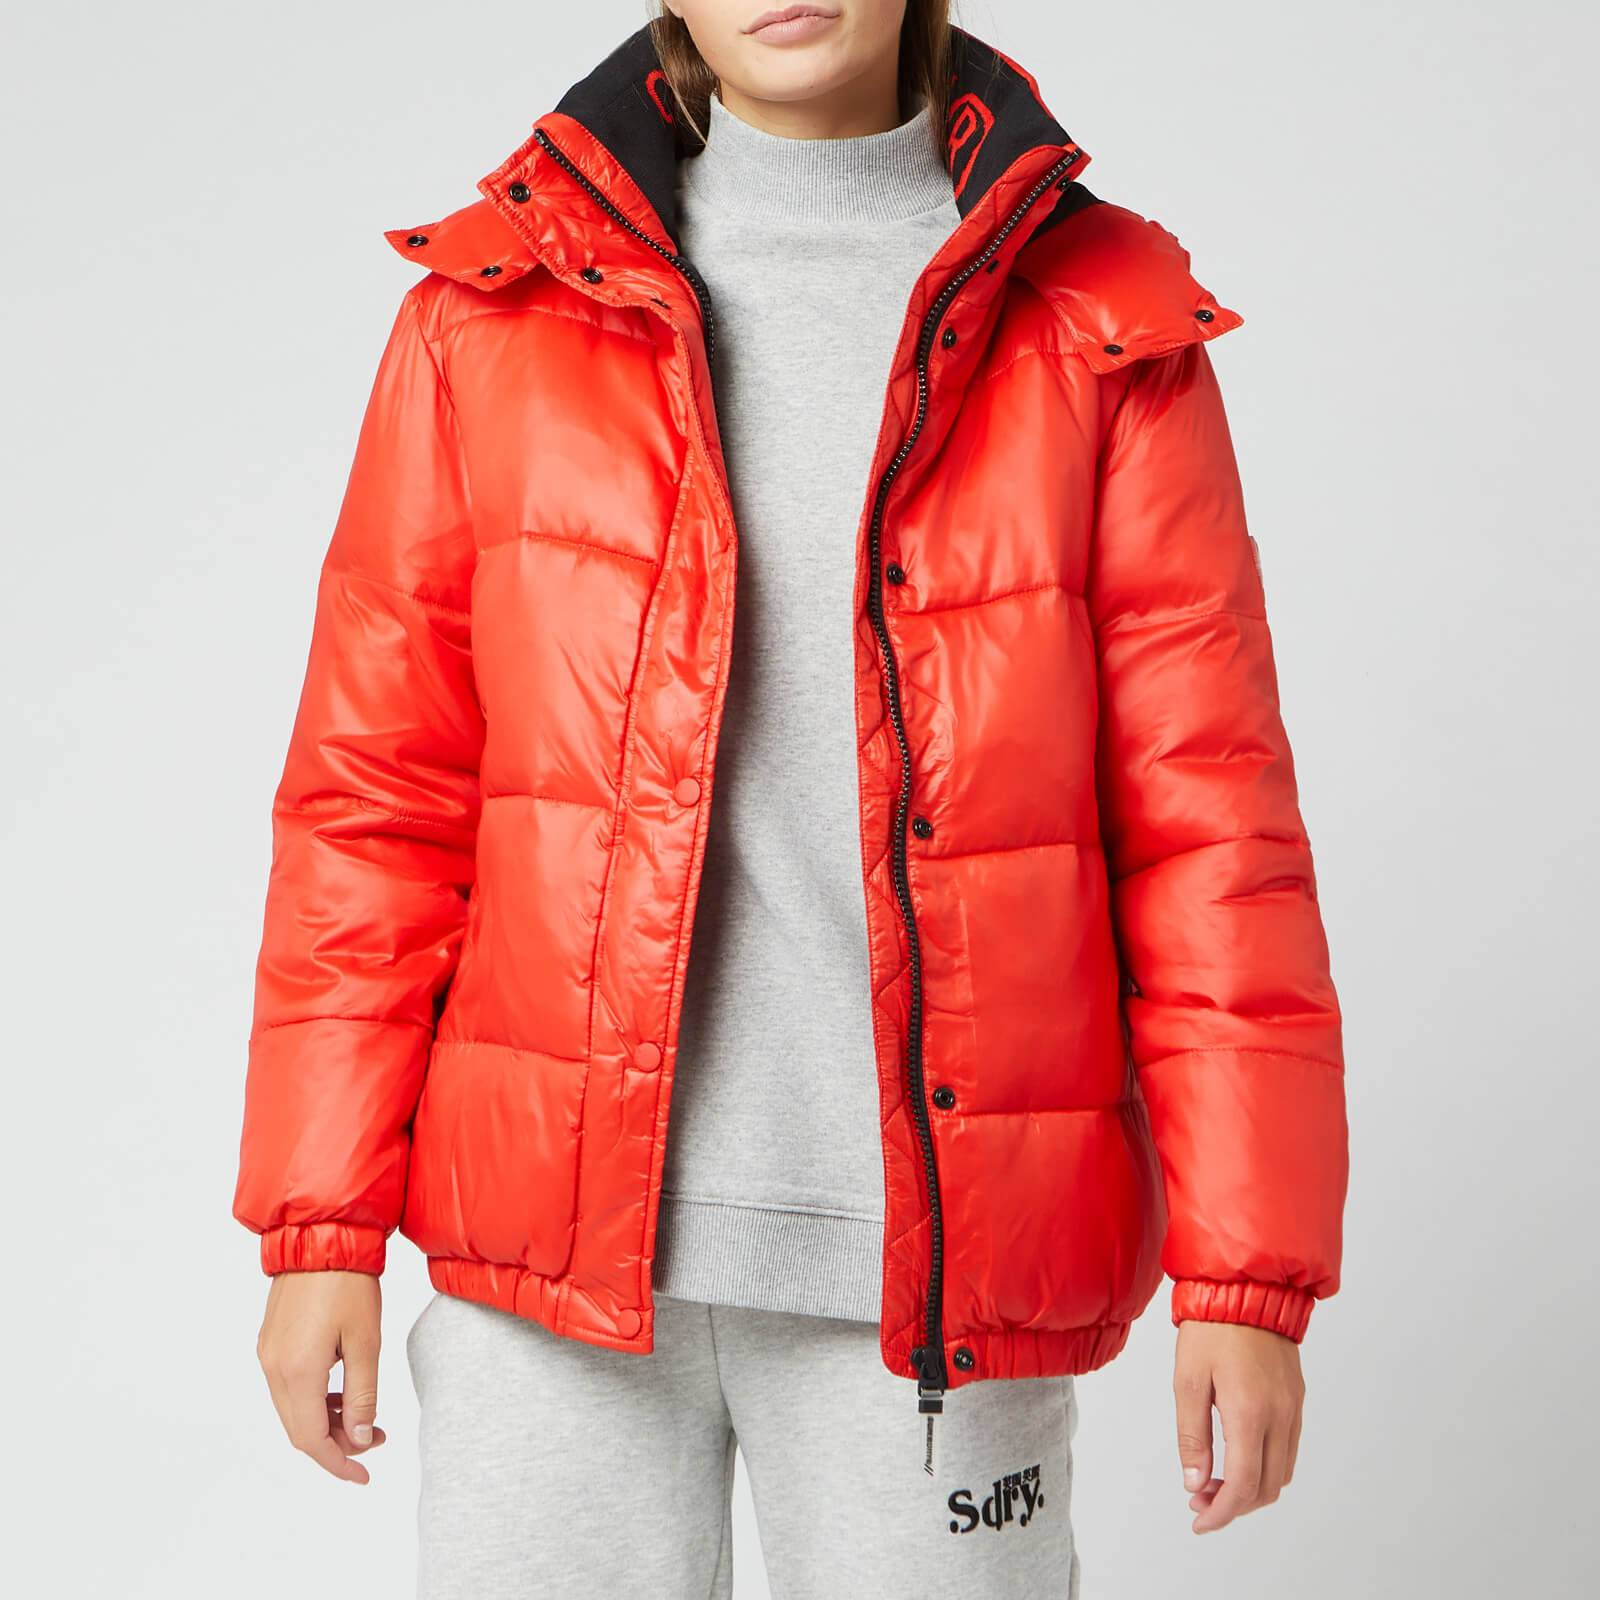 Superdry Women's Astrid Puffer Jacket - Apple Red - UK 14